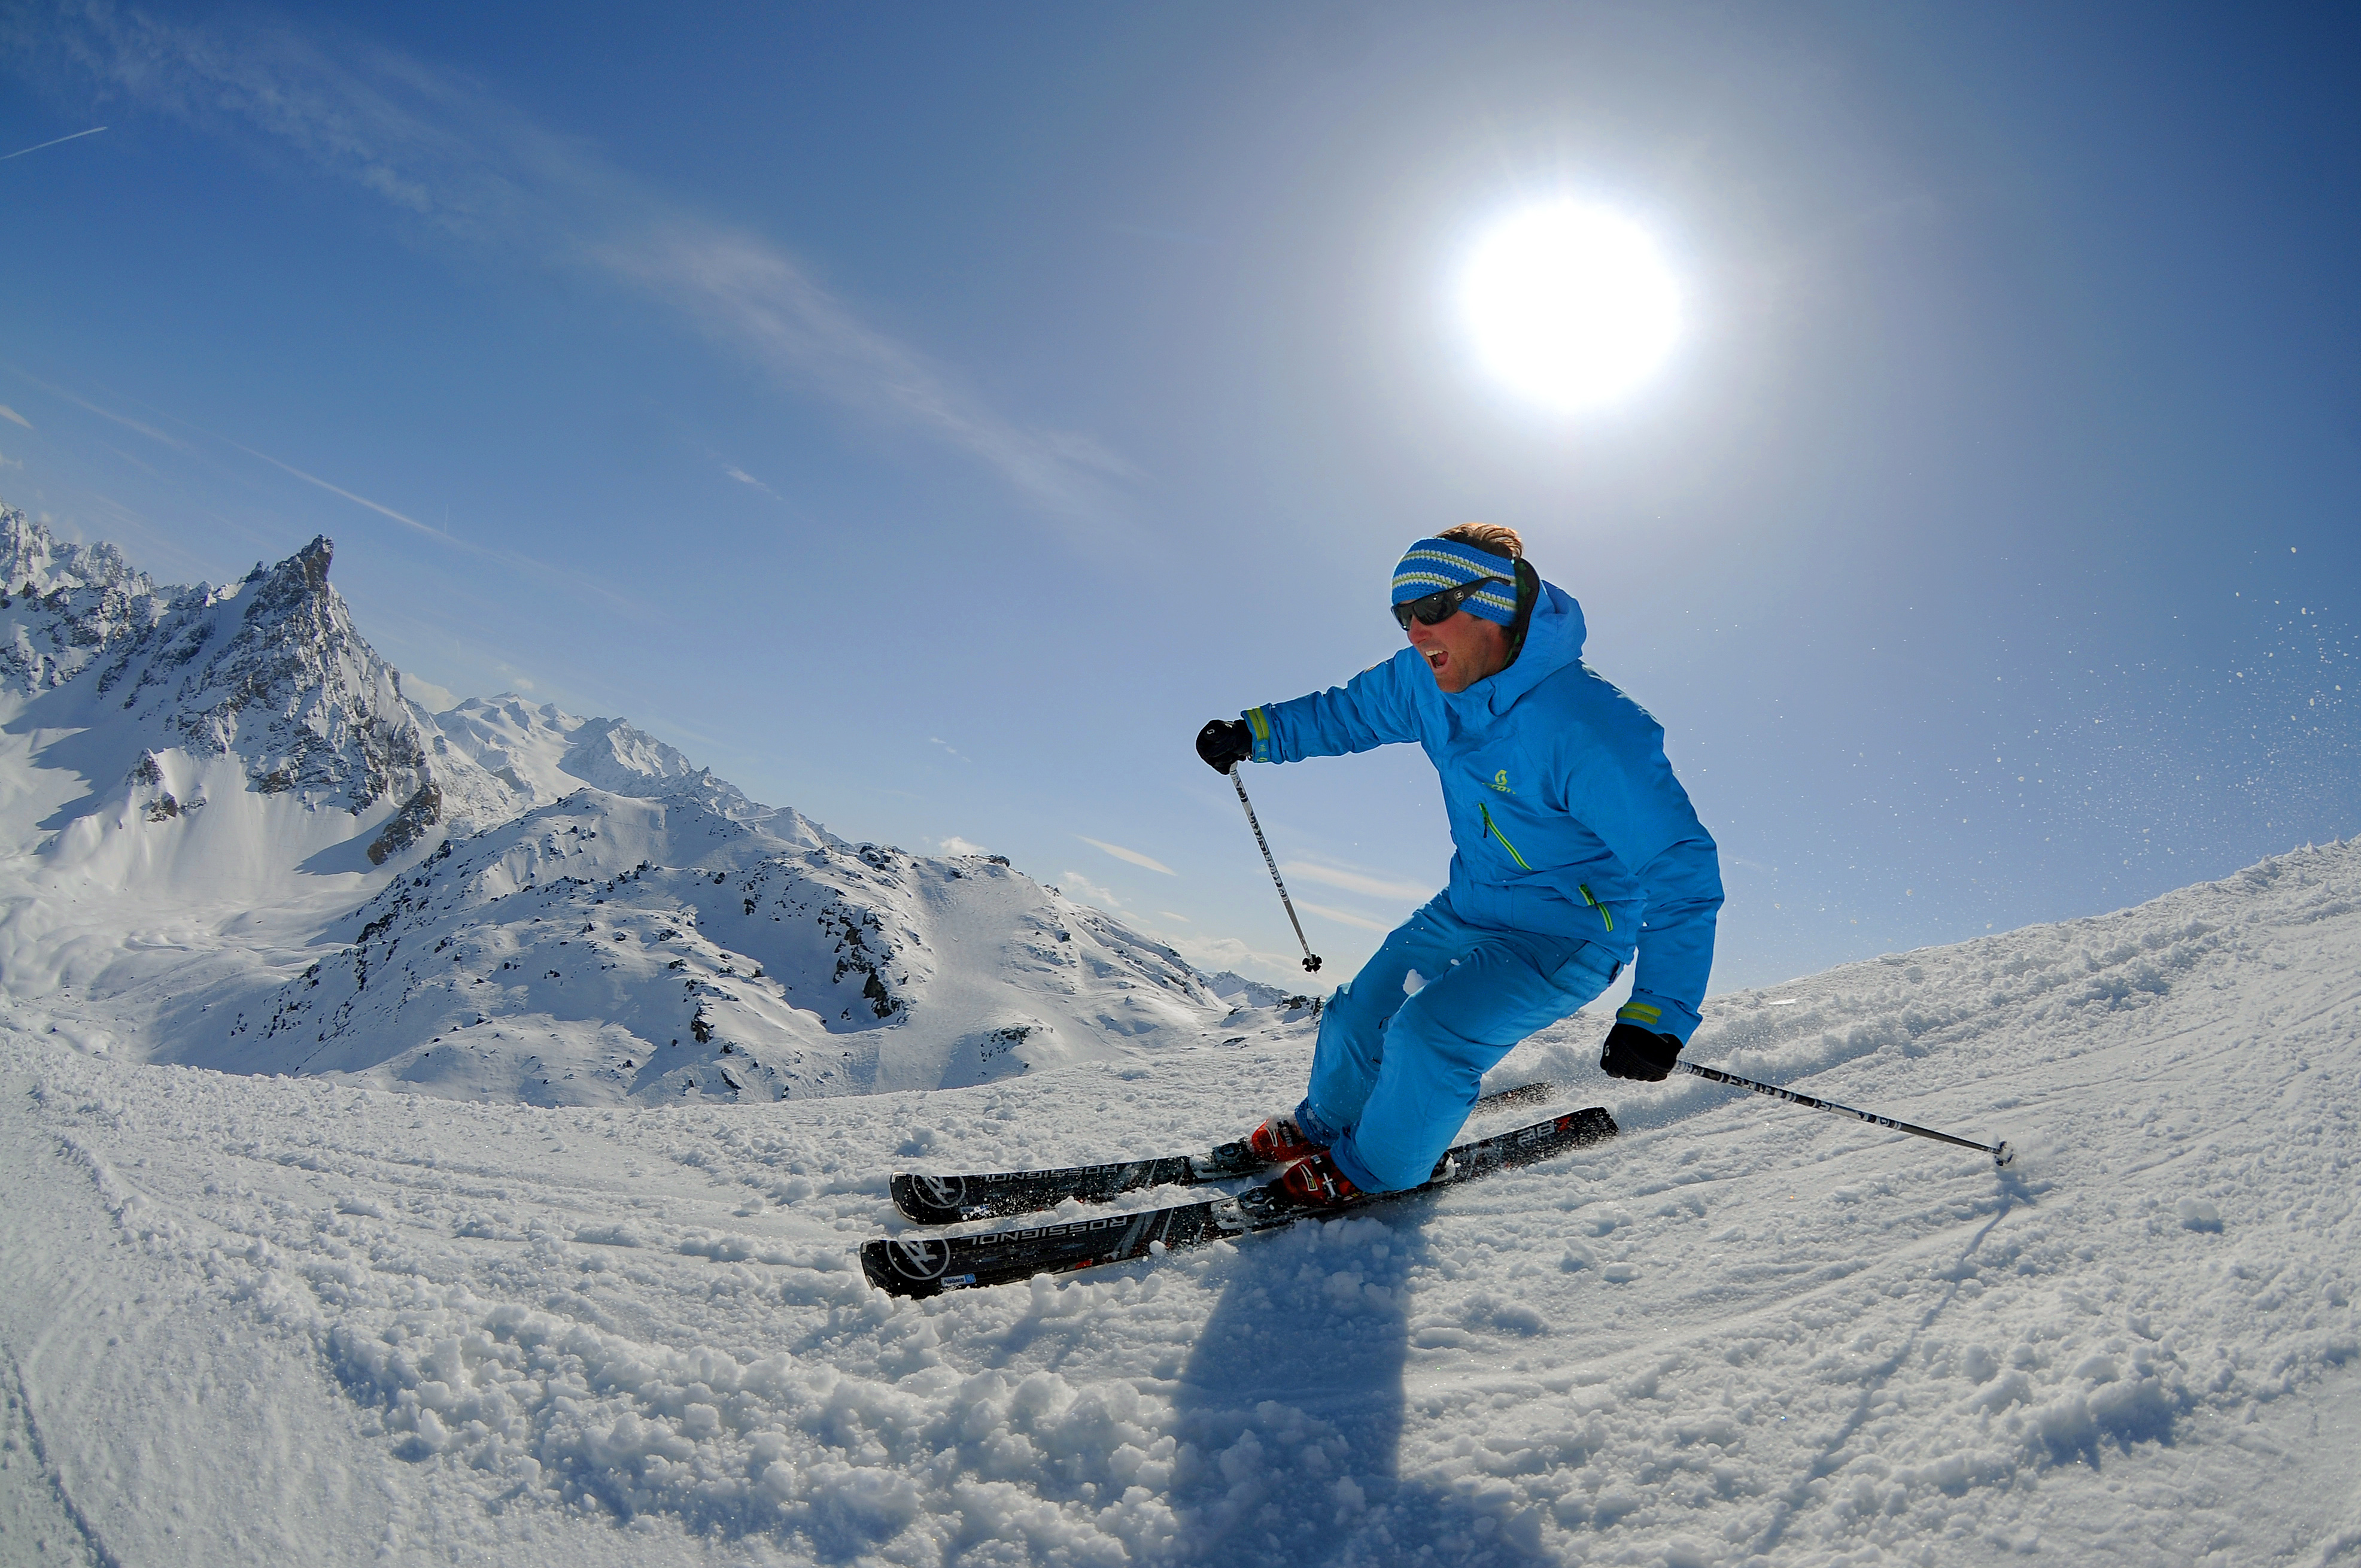 The top of Courchevel